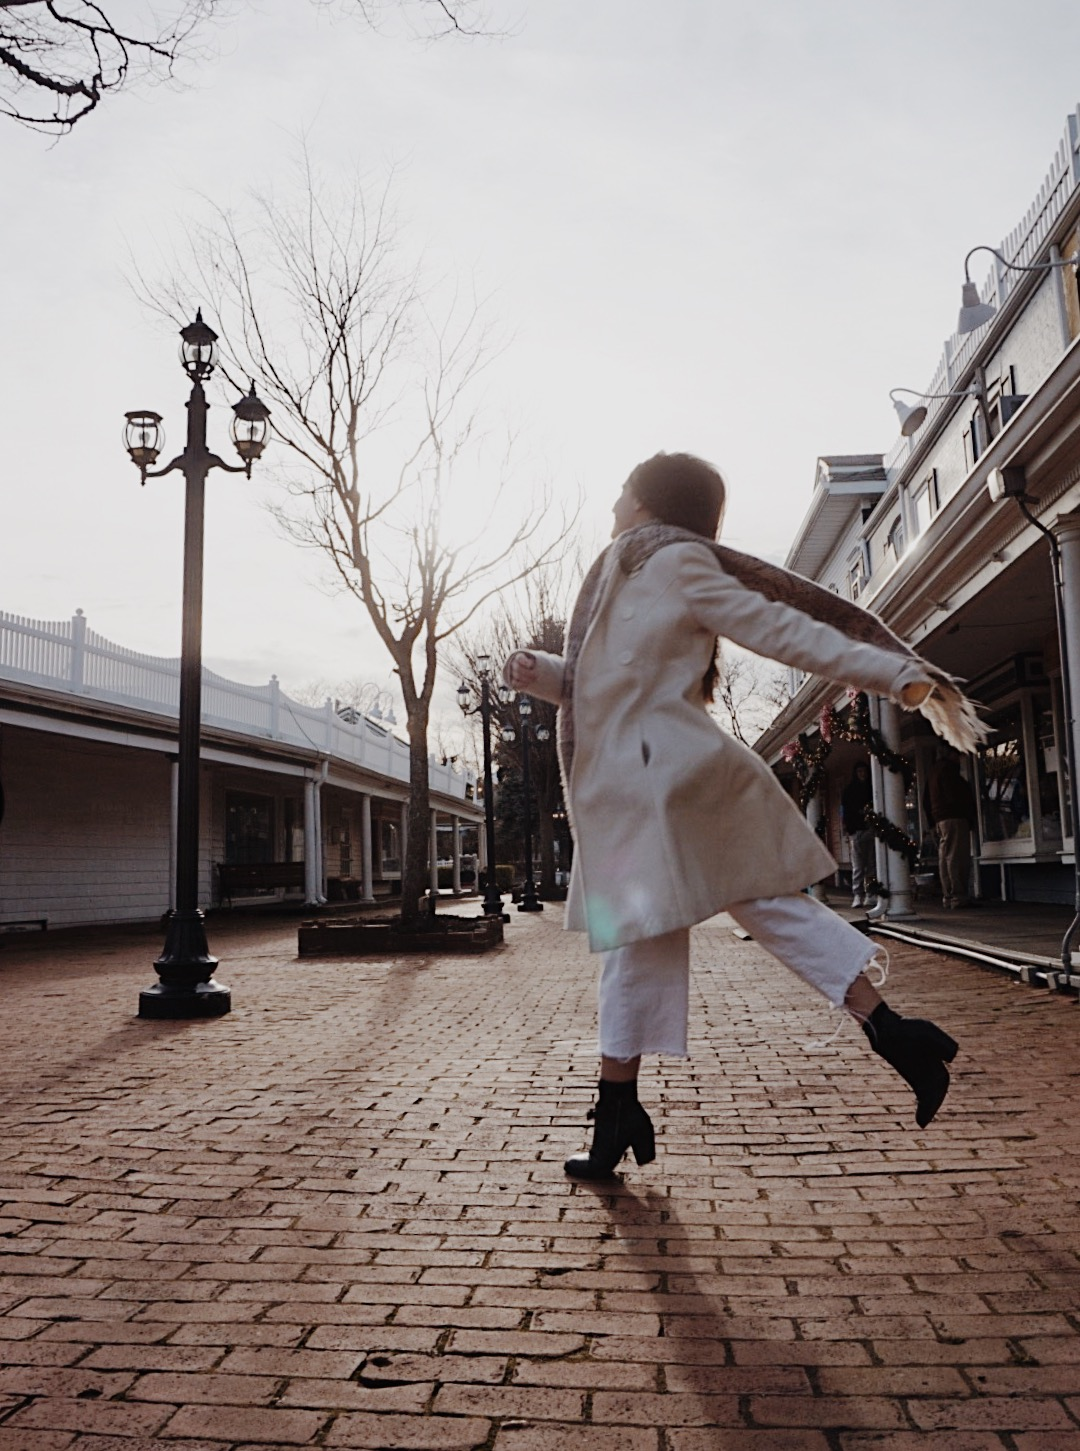 a girl dancing in a white winter outfit